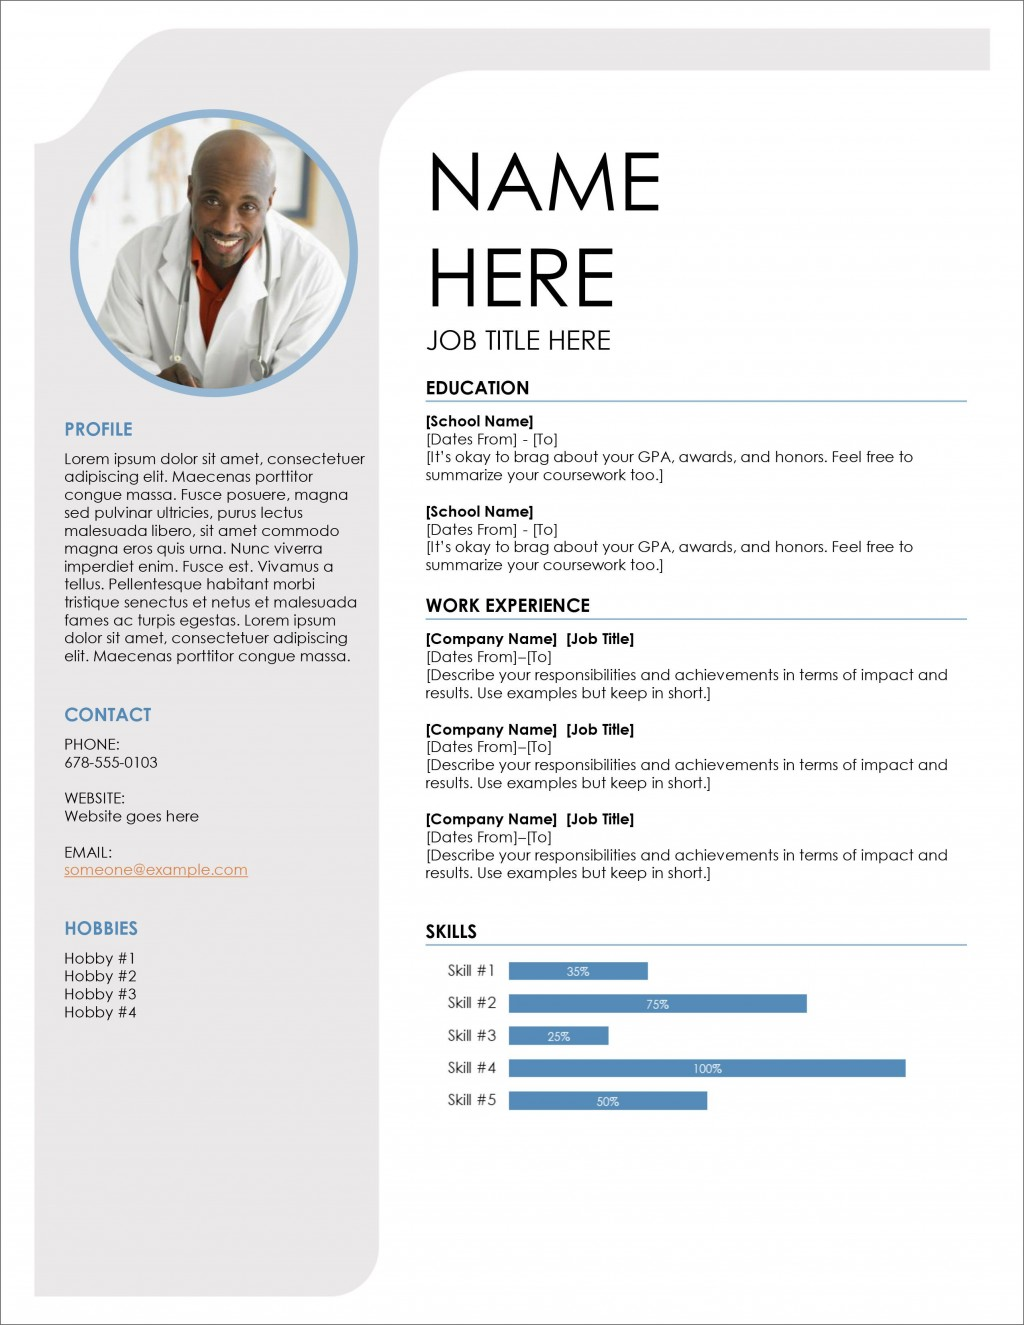 006 Astounding Professional Resume Template Free Download Word Image  Cv 2020 Format With PhotoLarge